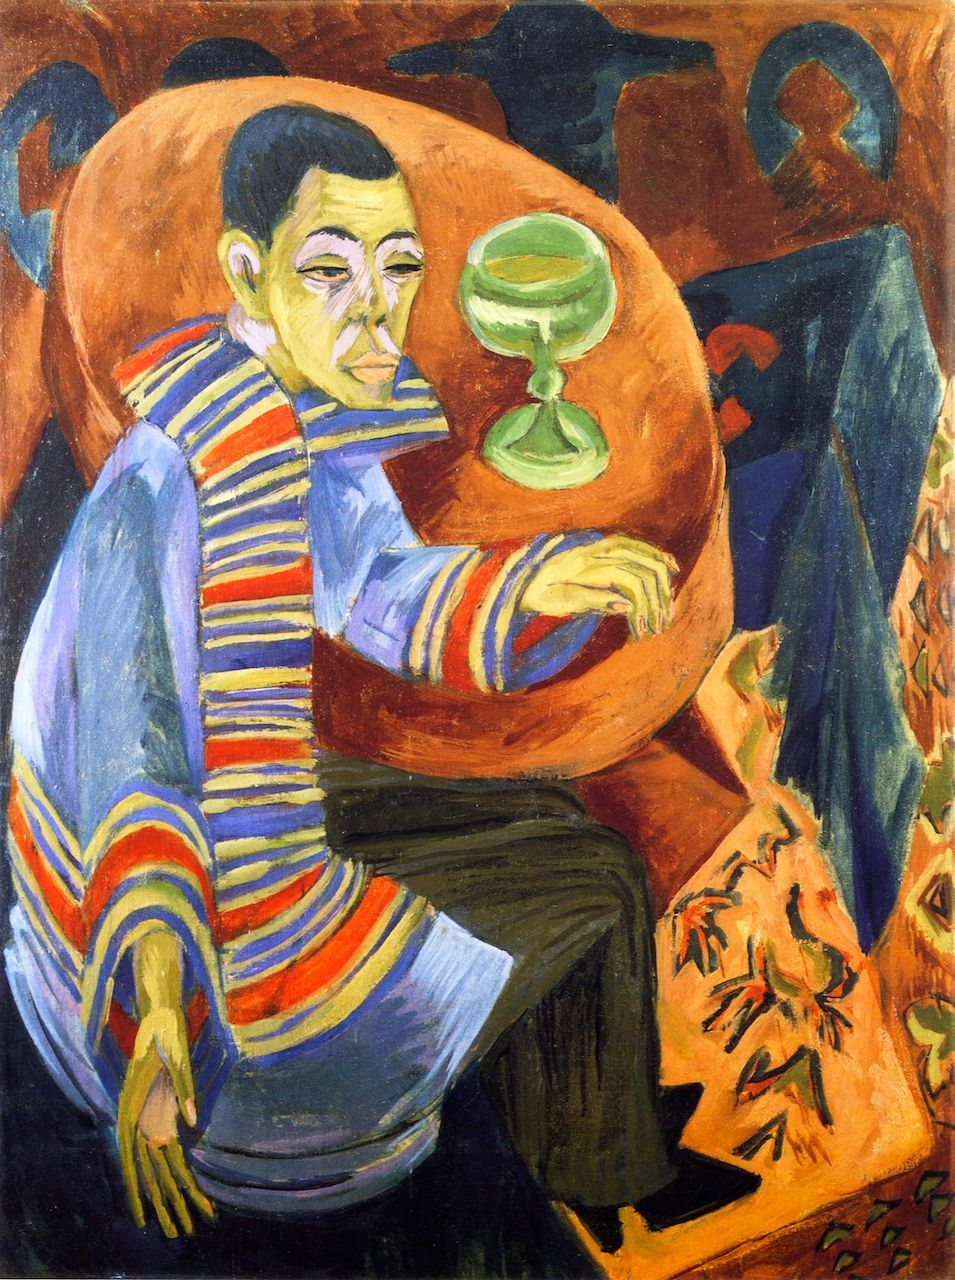 Ernst Luwig Kirchner, The Drinker, 1915